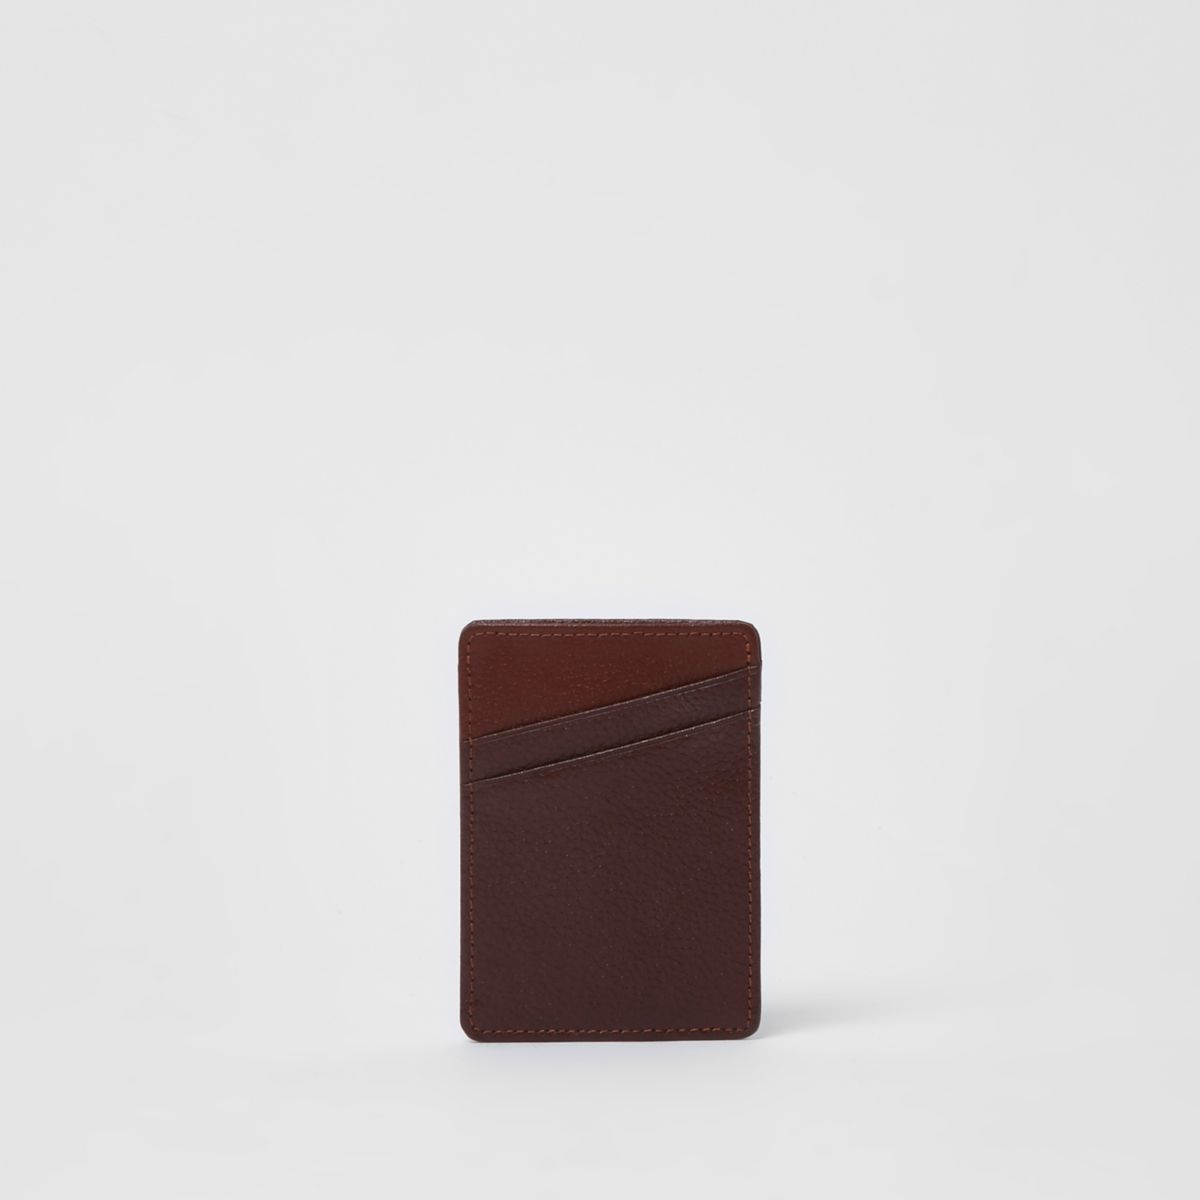 Tan faux leather card holder